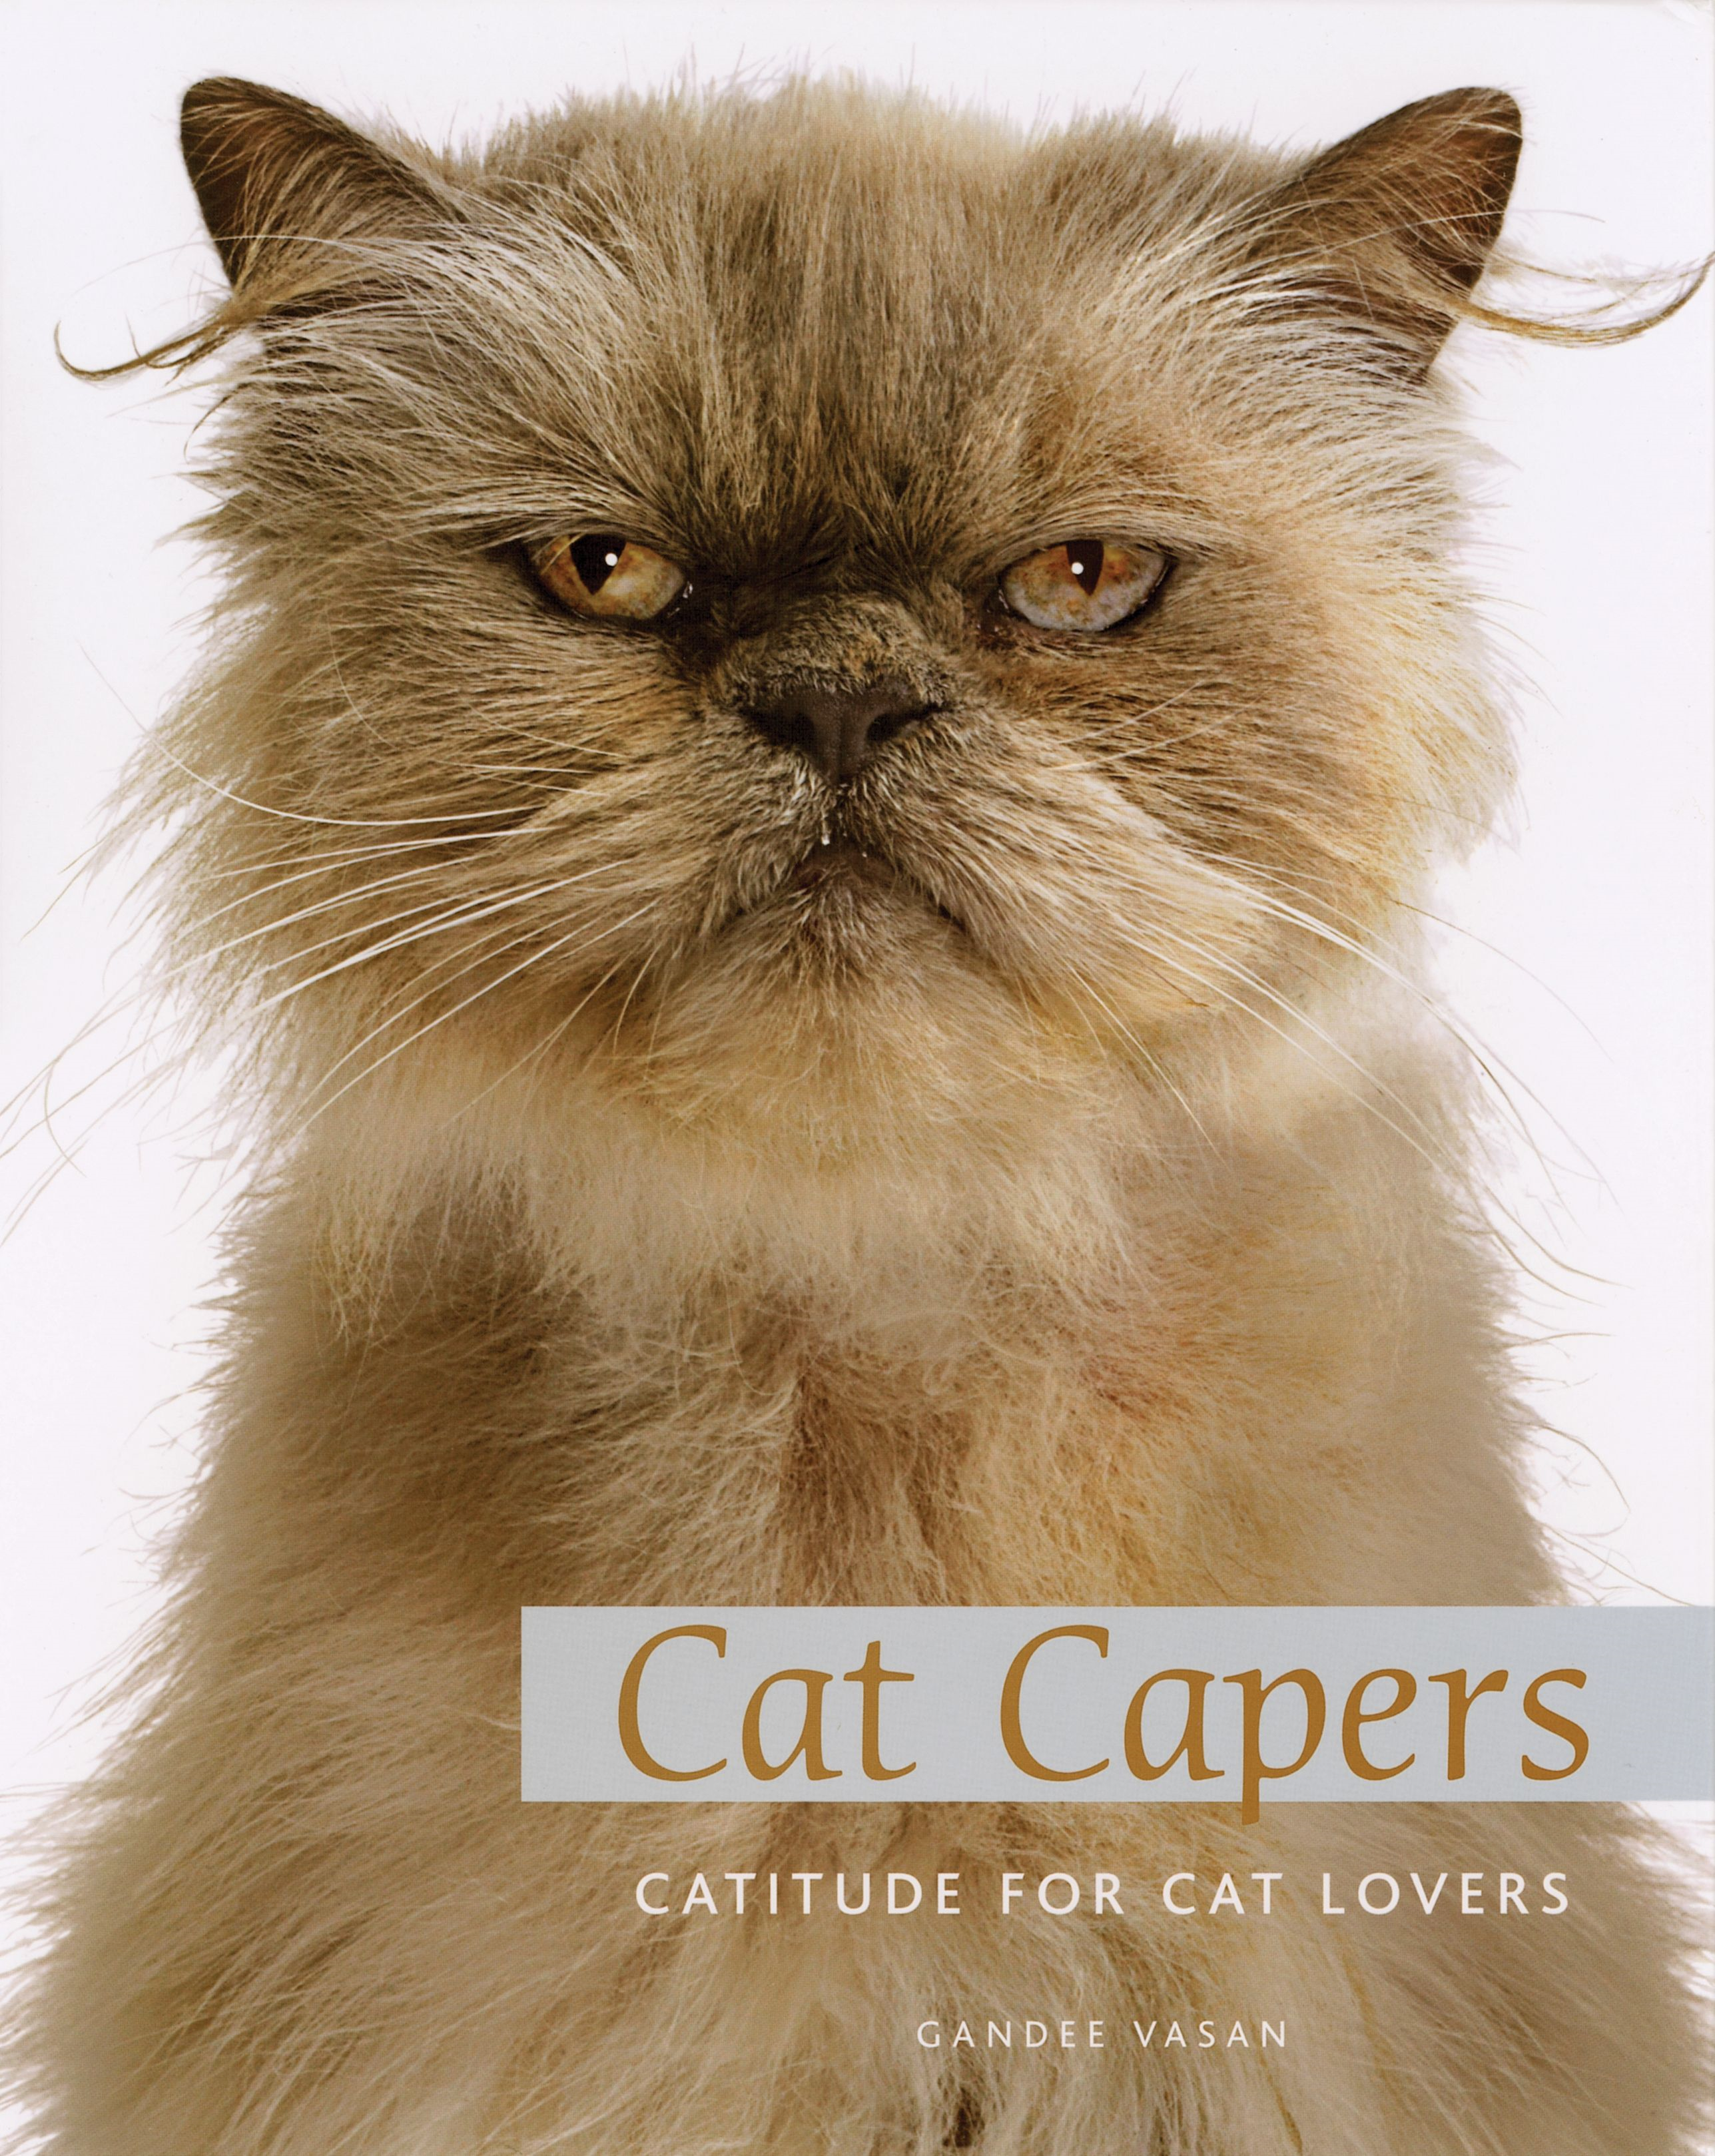 Cat Capers: Catitude for Cat Lovers By: Gandee Vasan,Ltd. PQ Publishers